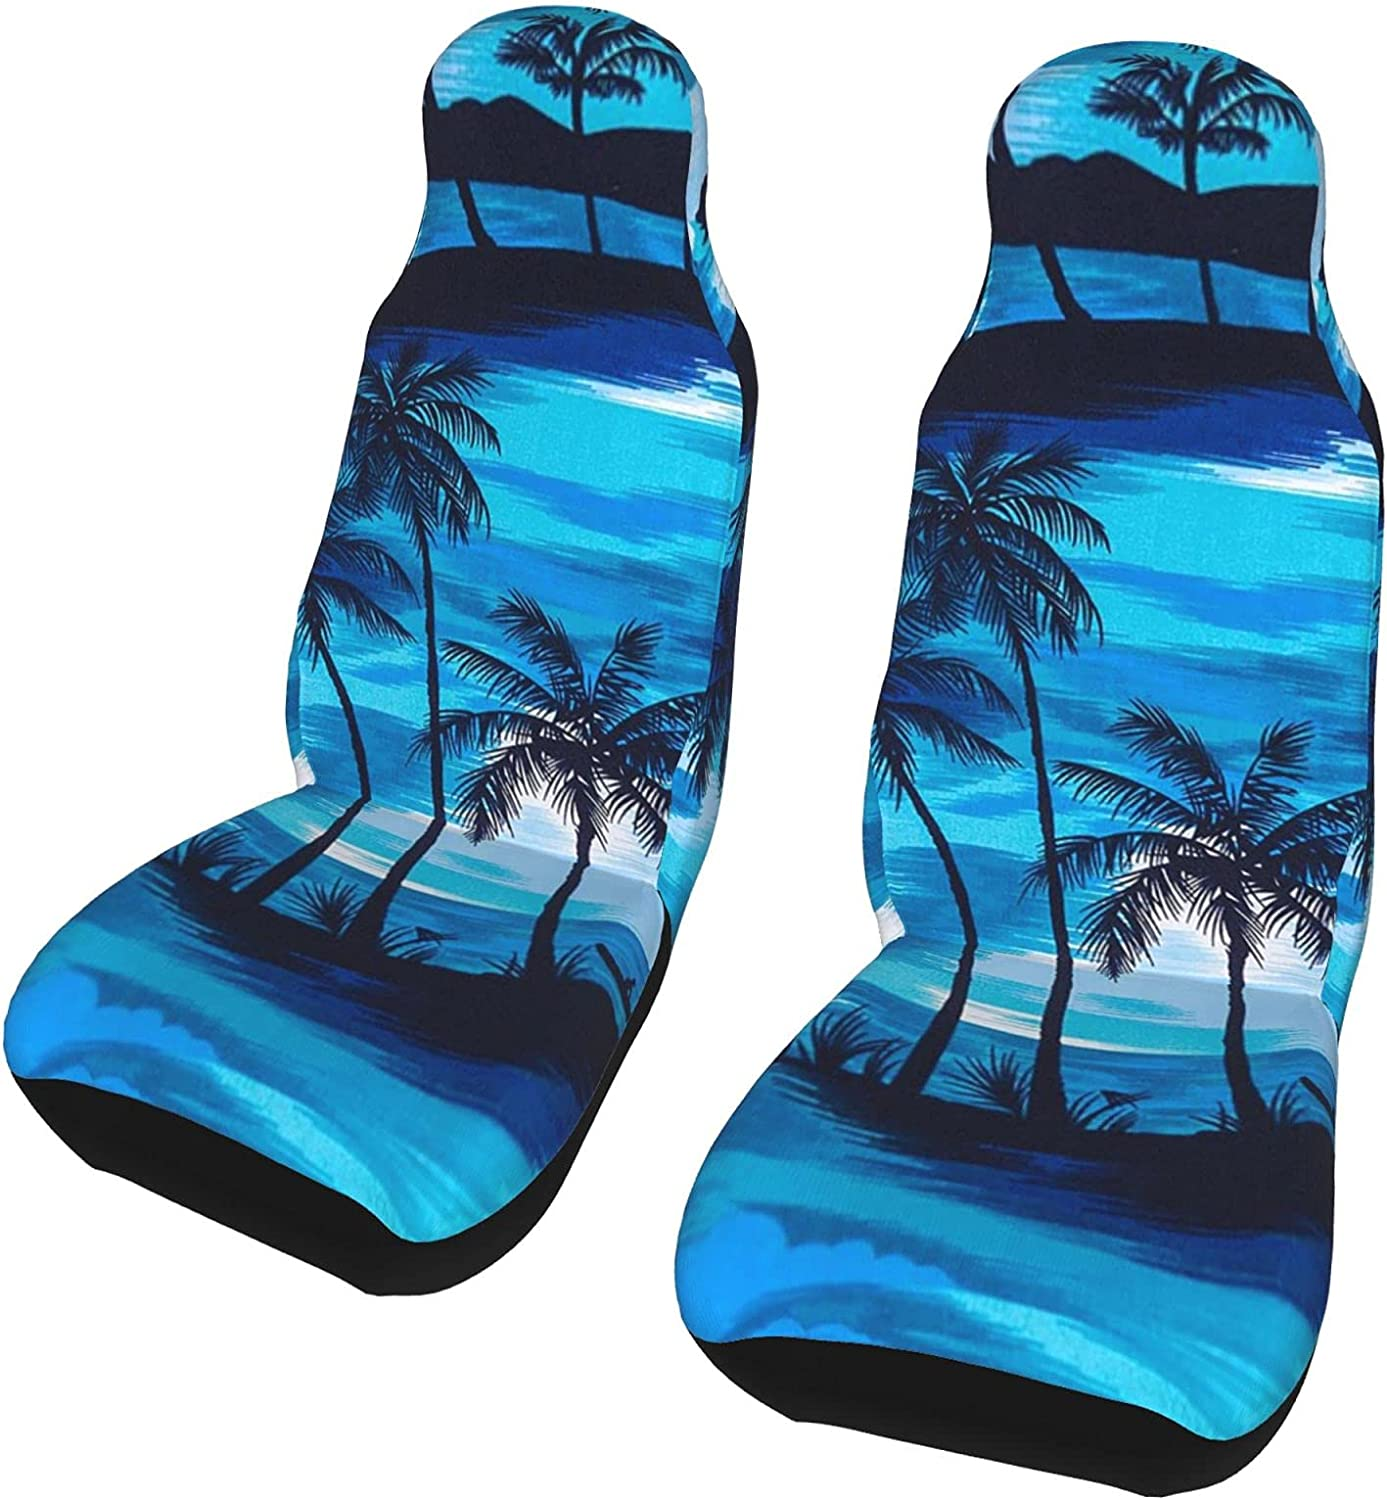 Inrubie Blue Color Palm Trees 2 Front Pcs Seat Seats Car We OFFer at cheap prices Covers Mesa Mall